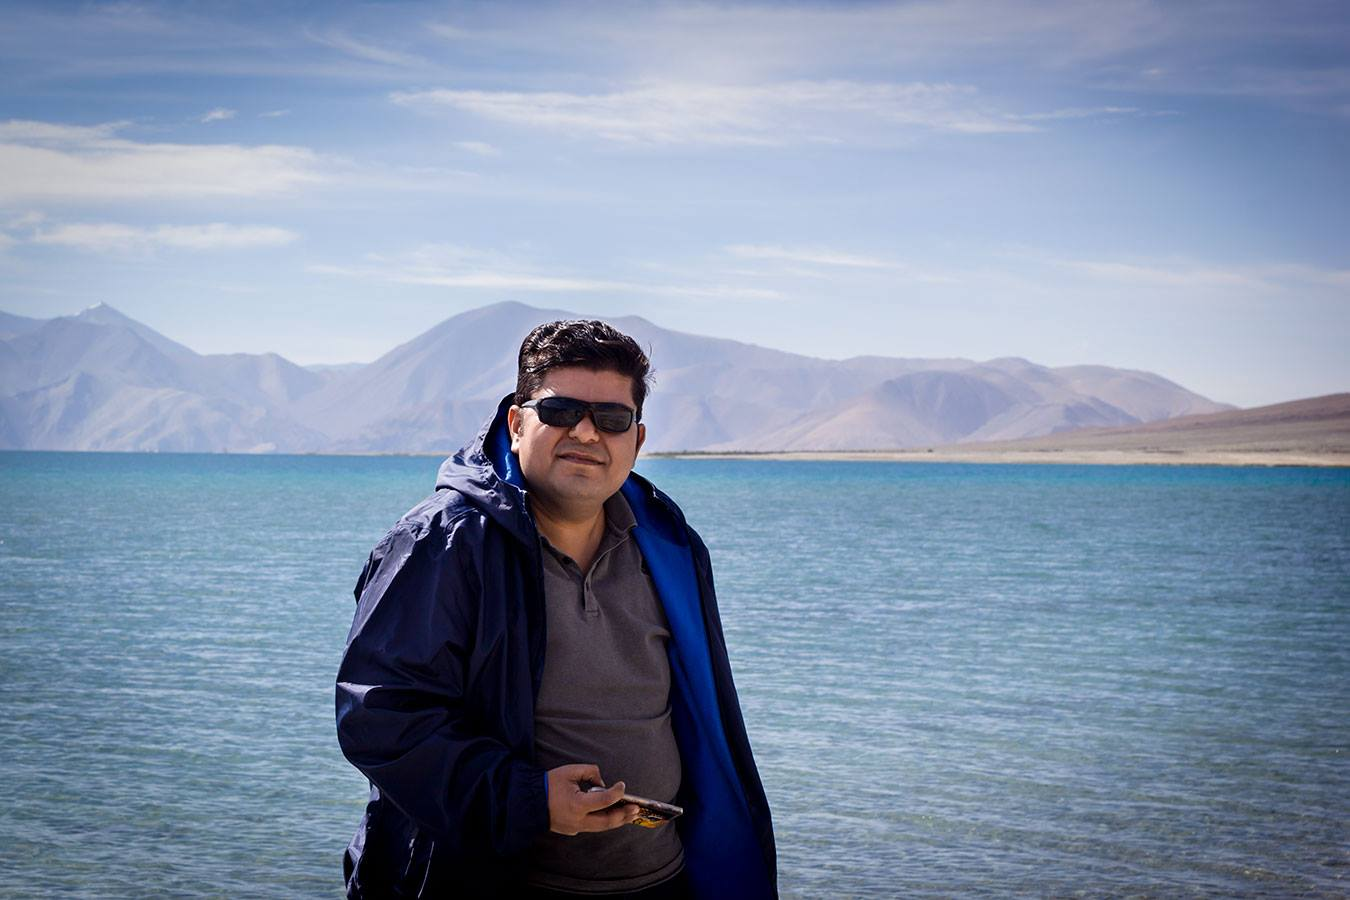 Yogesh Sarkar was the founder of BCMTouring